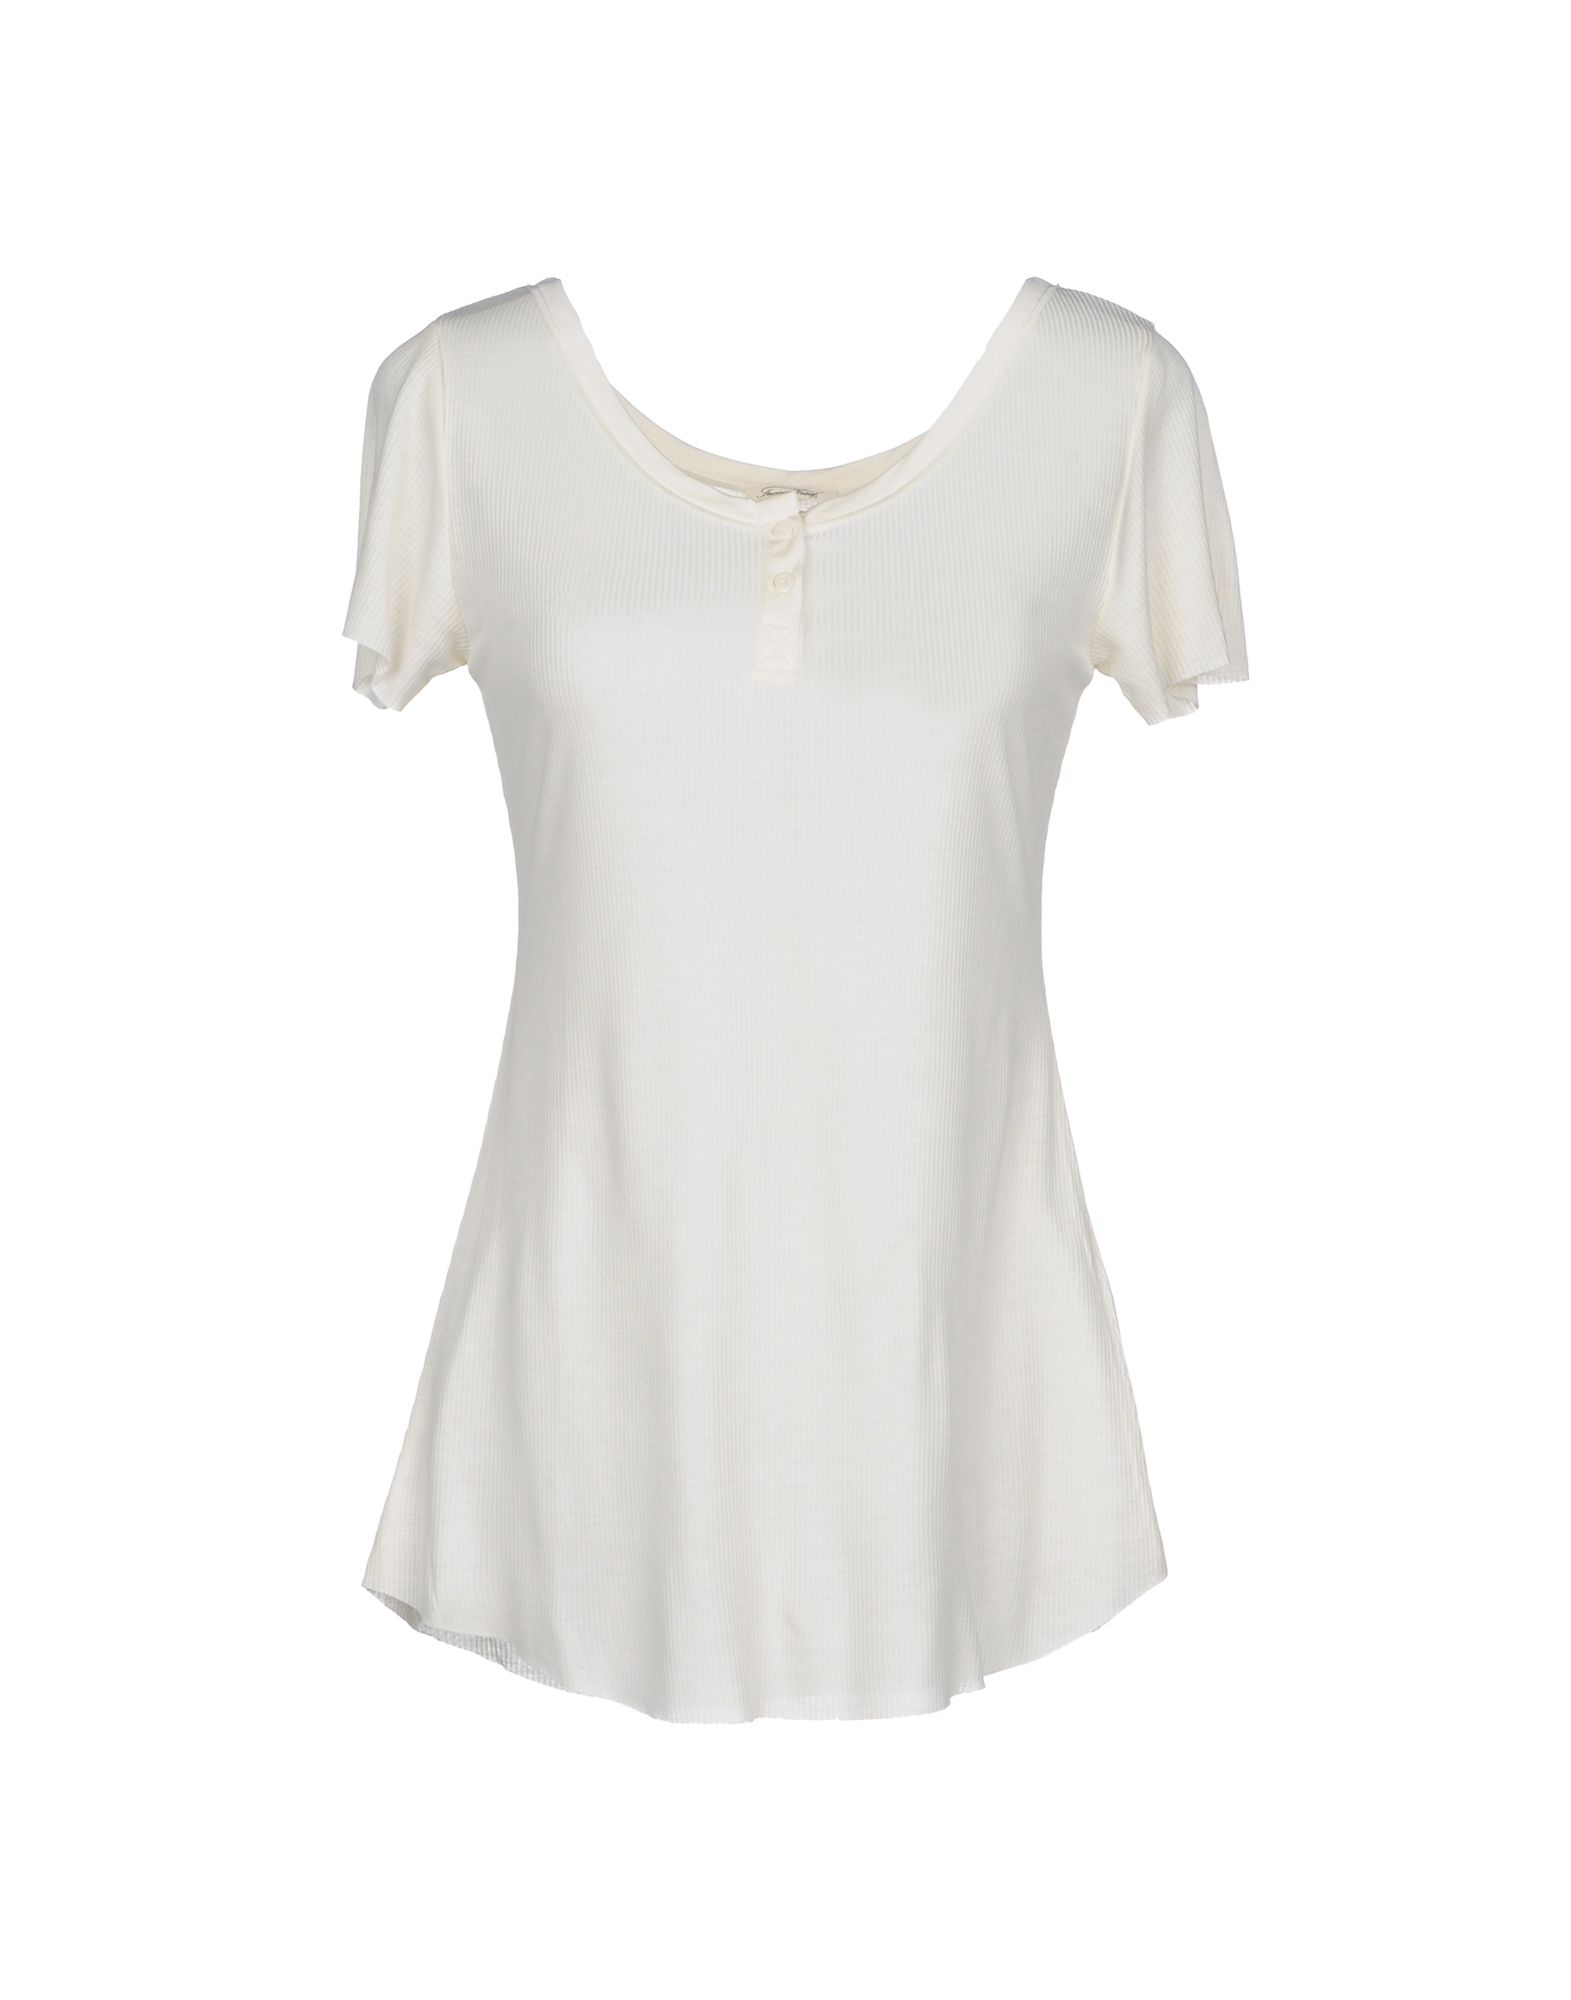 AMERICAN VINTAGE T-Shirt in Ivory